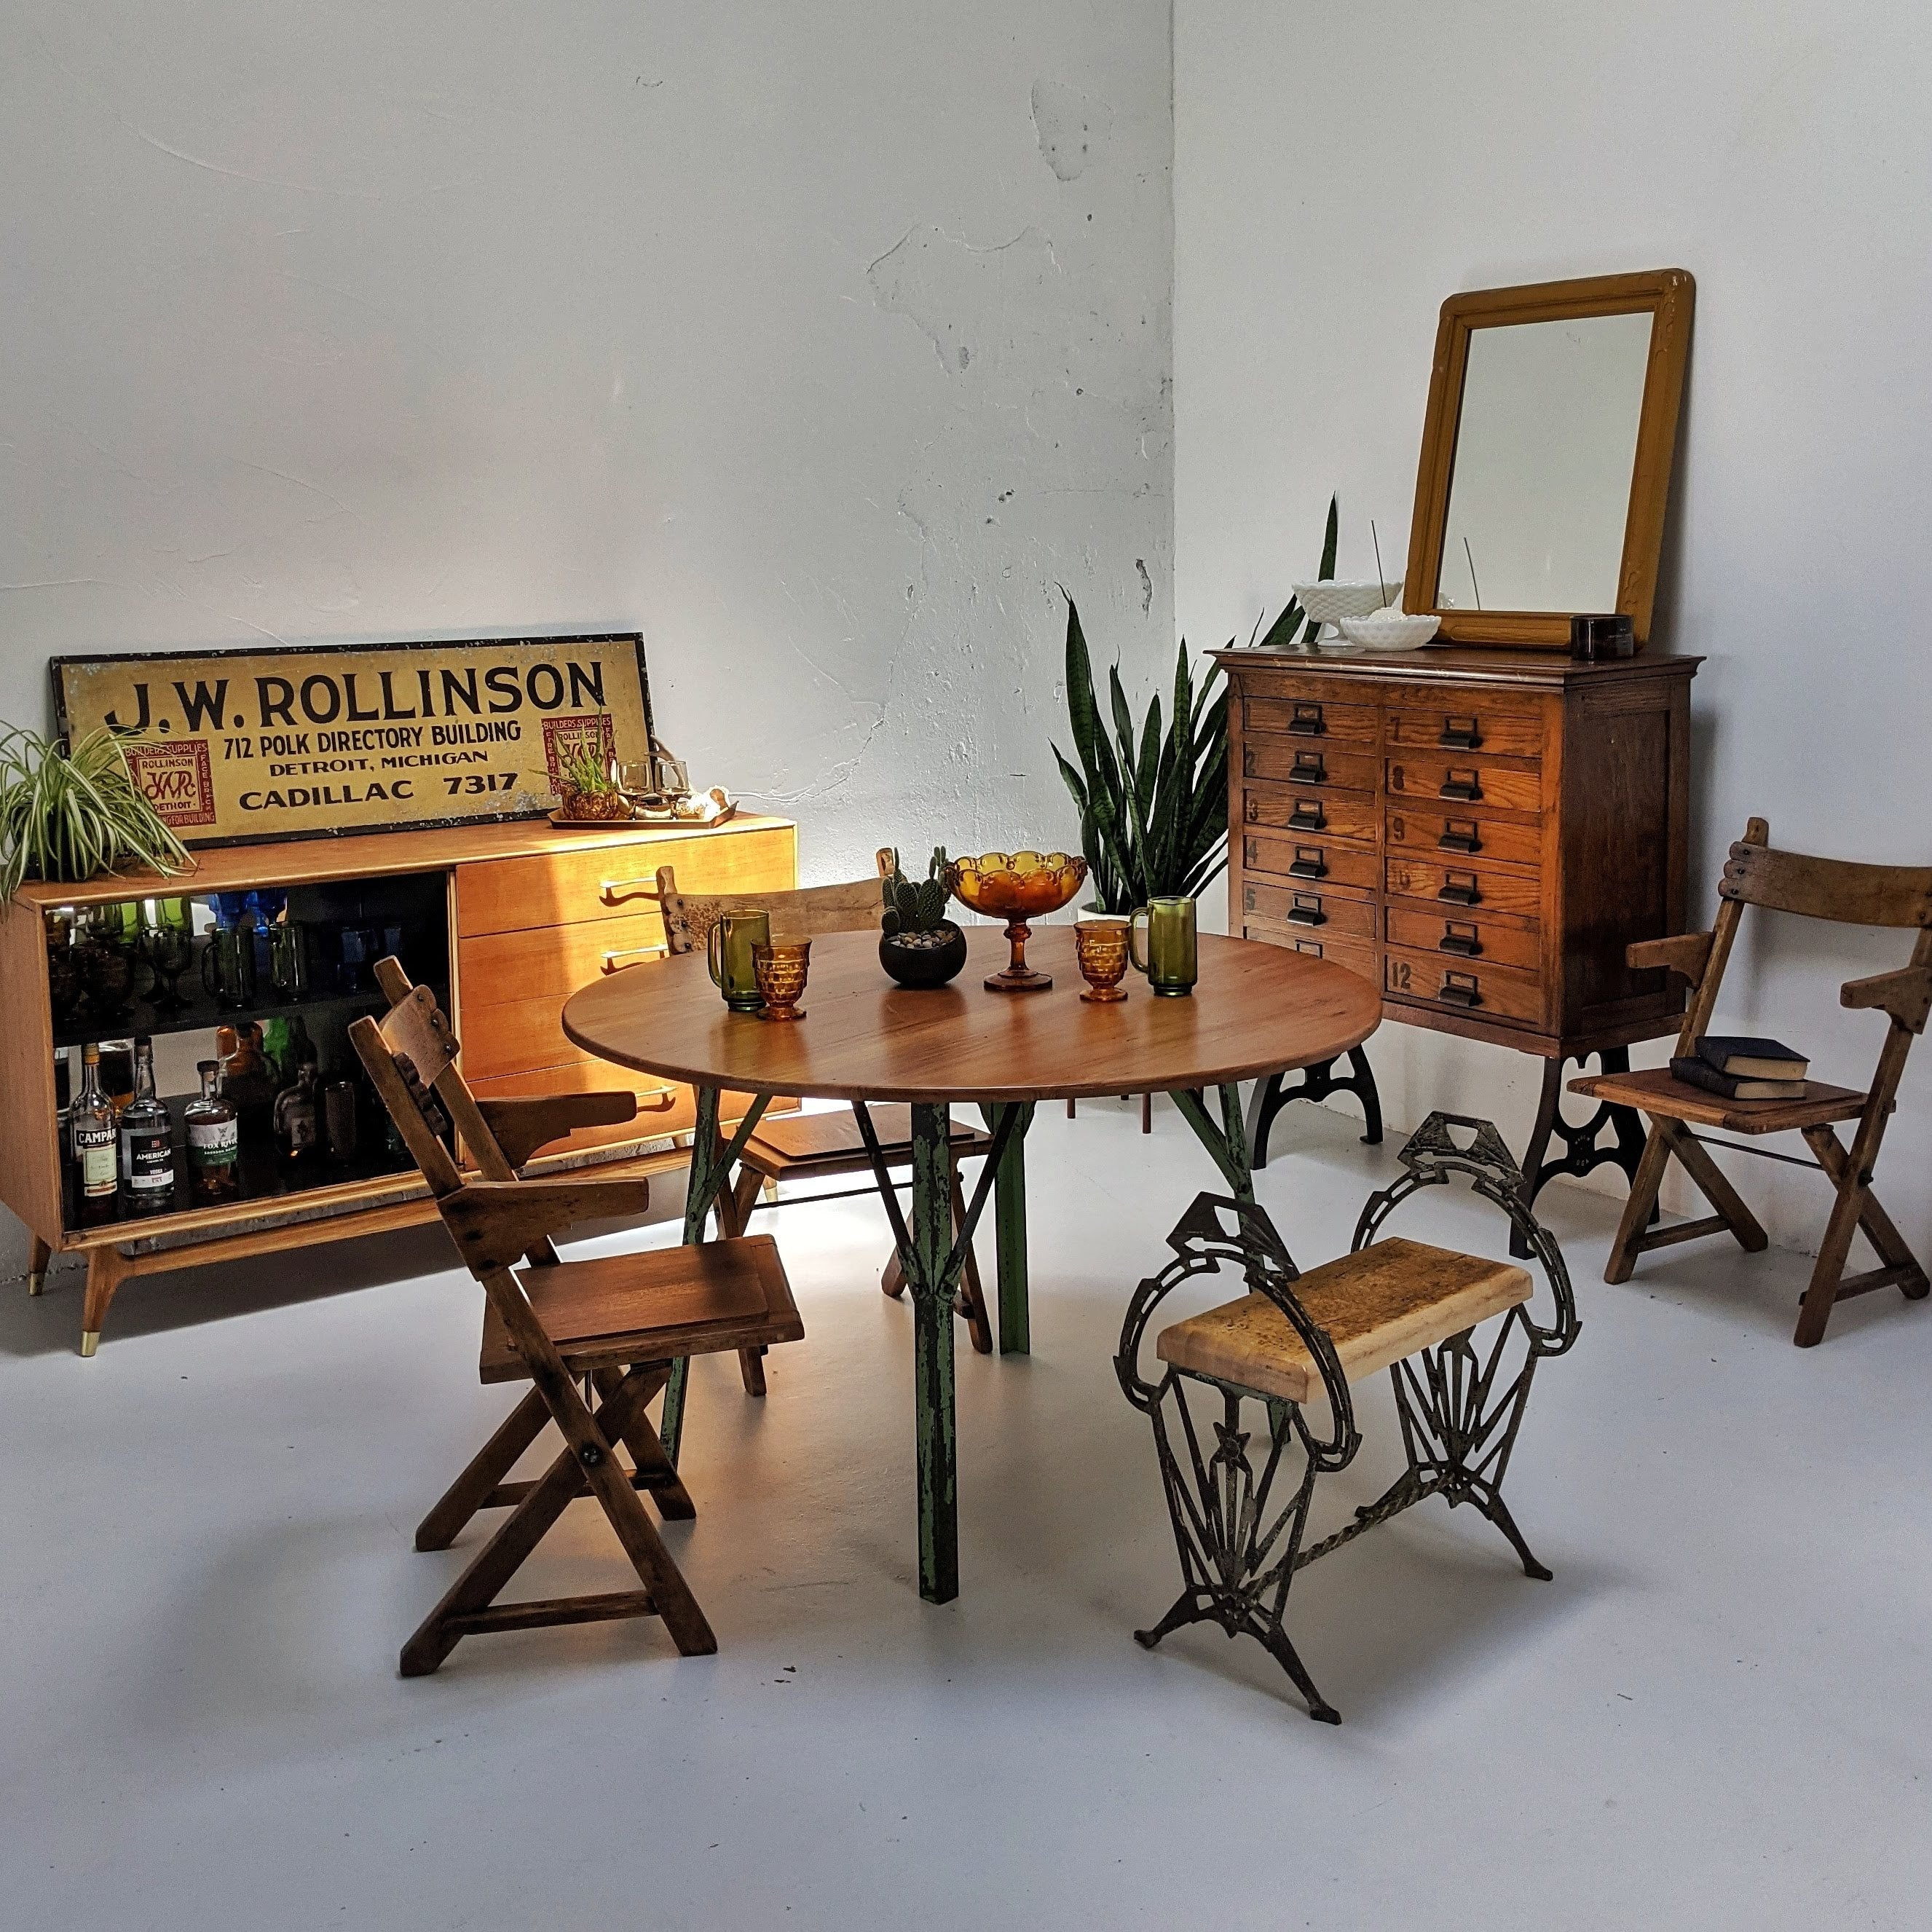 staged-dining-room-table-chairs-cabinet